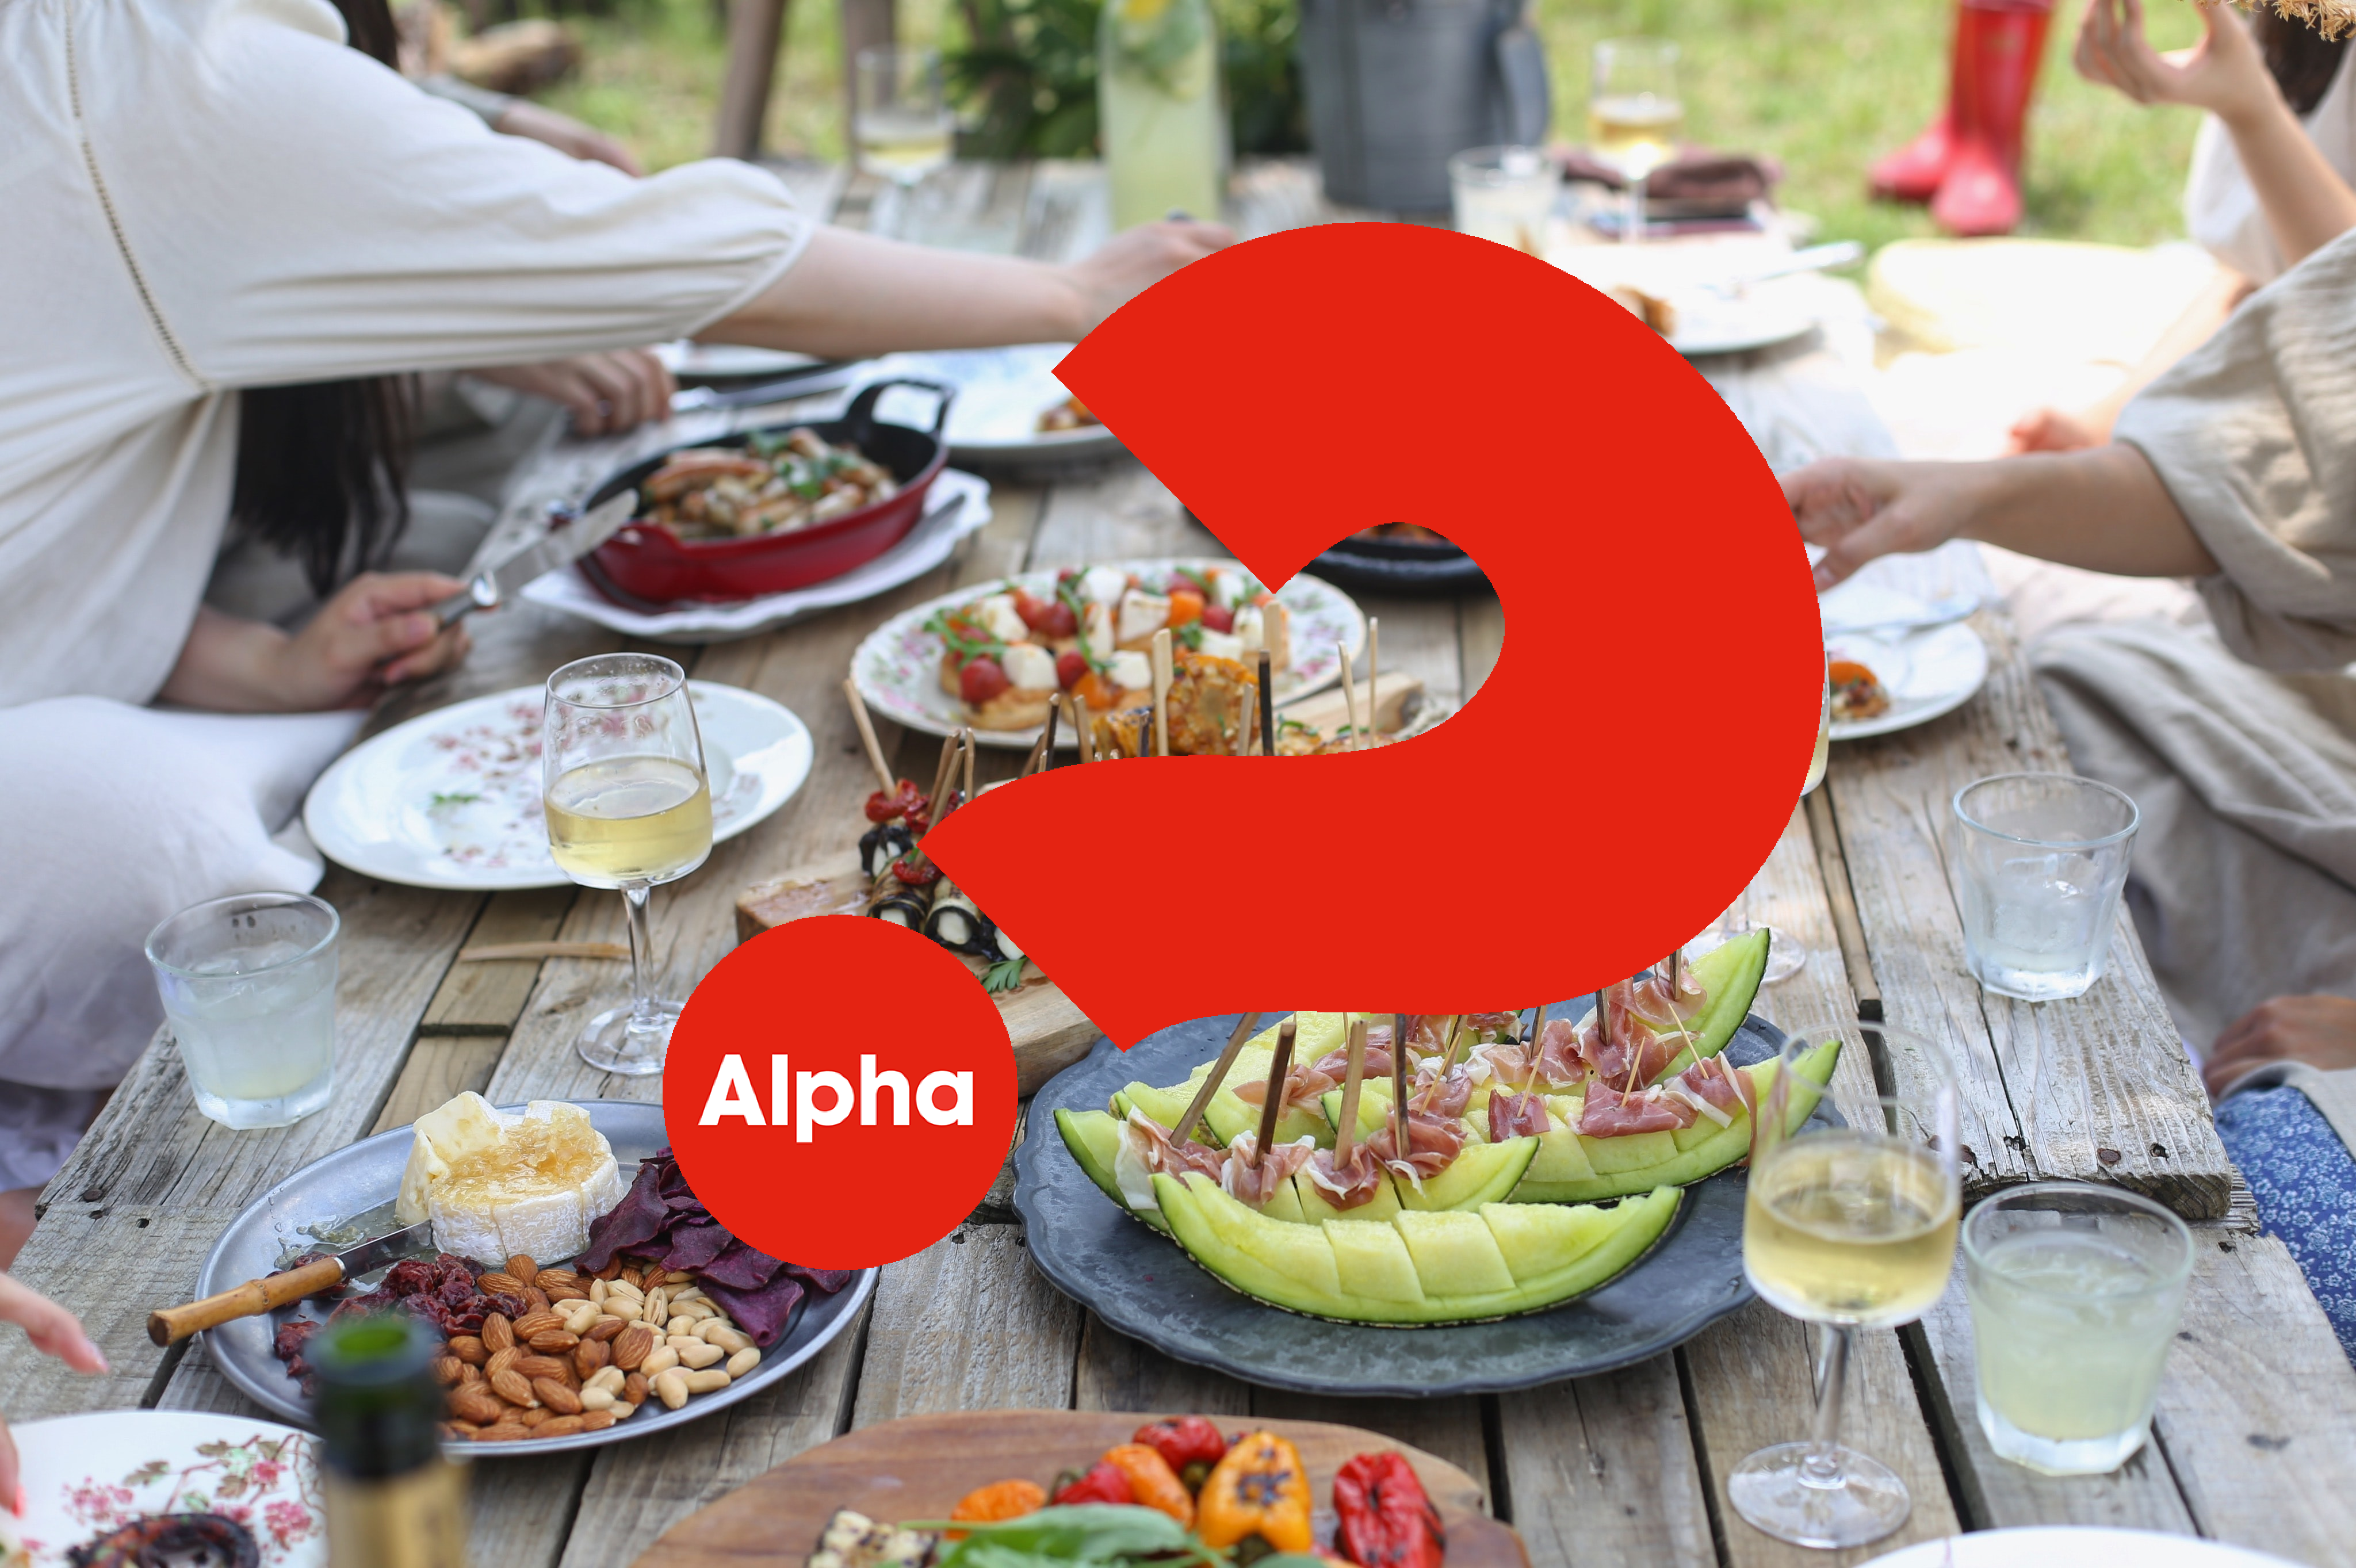 Alpha Course Opportunities at Hope Vineayrd Oxford